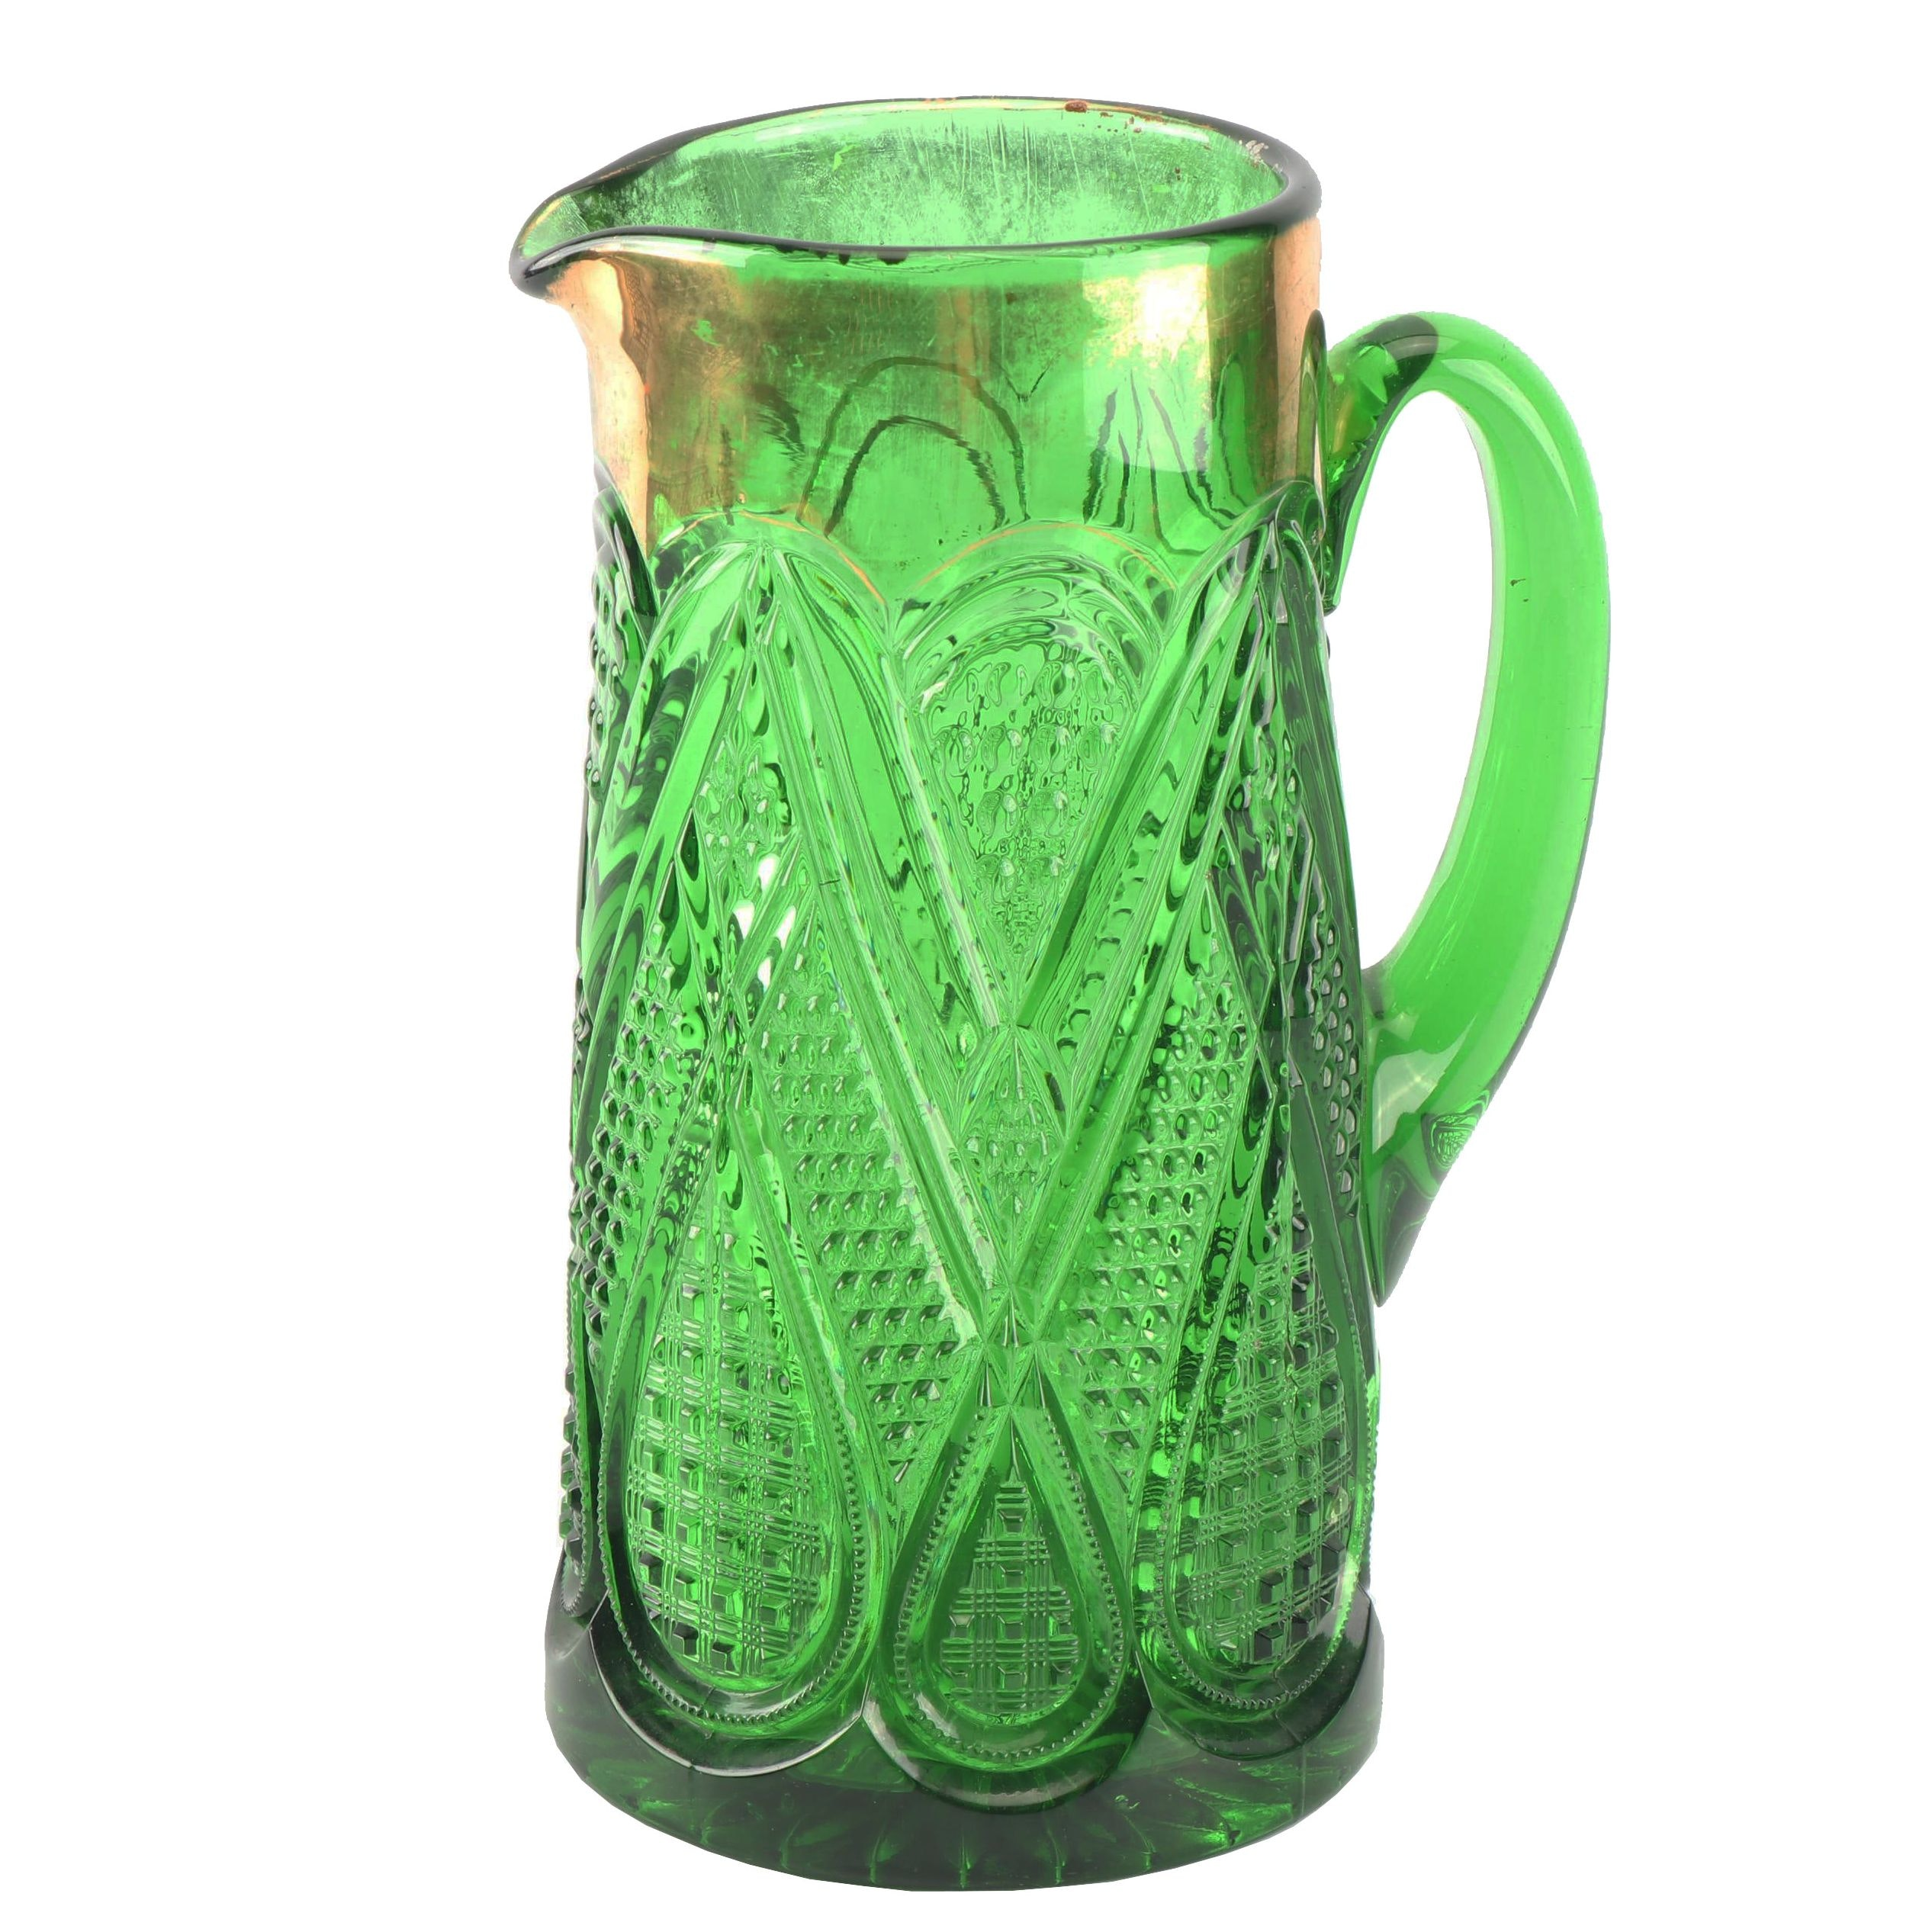 Vintage American Emerald Pressed Glass Pitcher